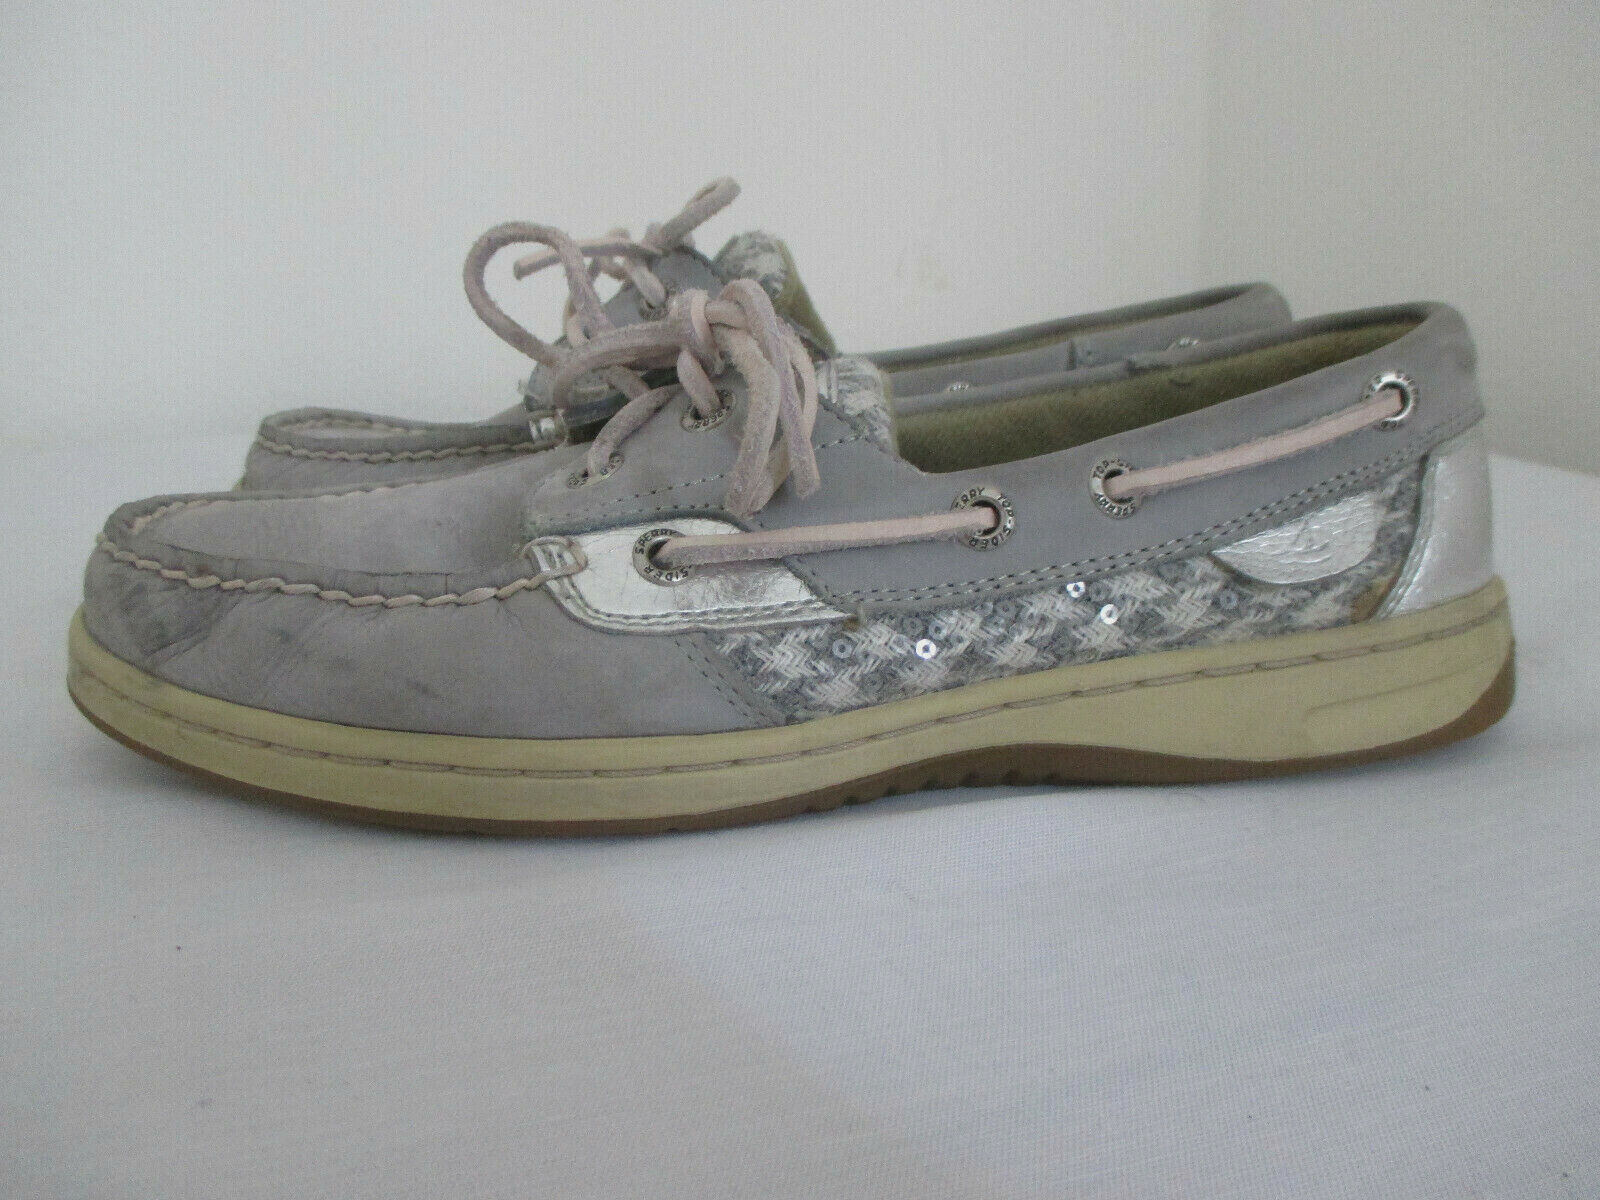 Sperry Top-Sider Women's Casual Boat Shoes Sz 7 M Gray Leather Mesh Siding